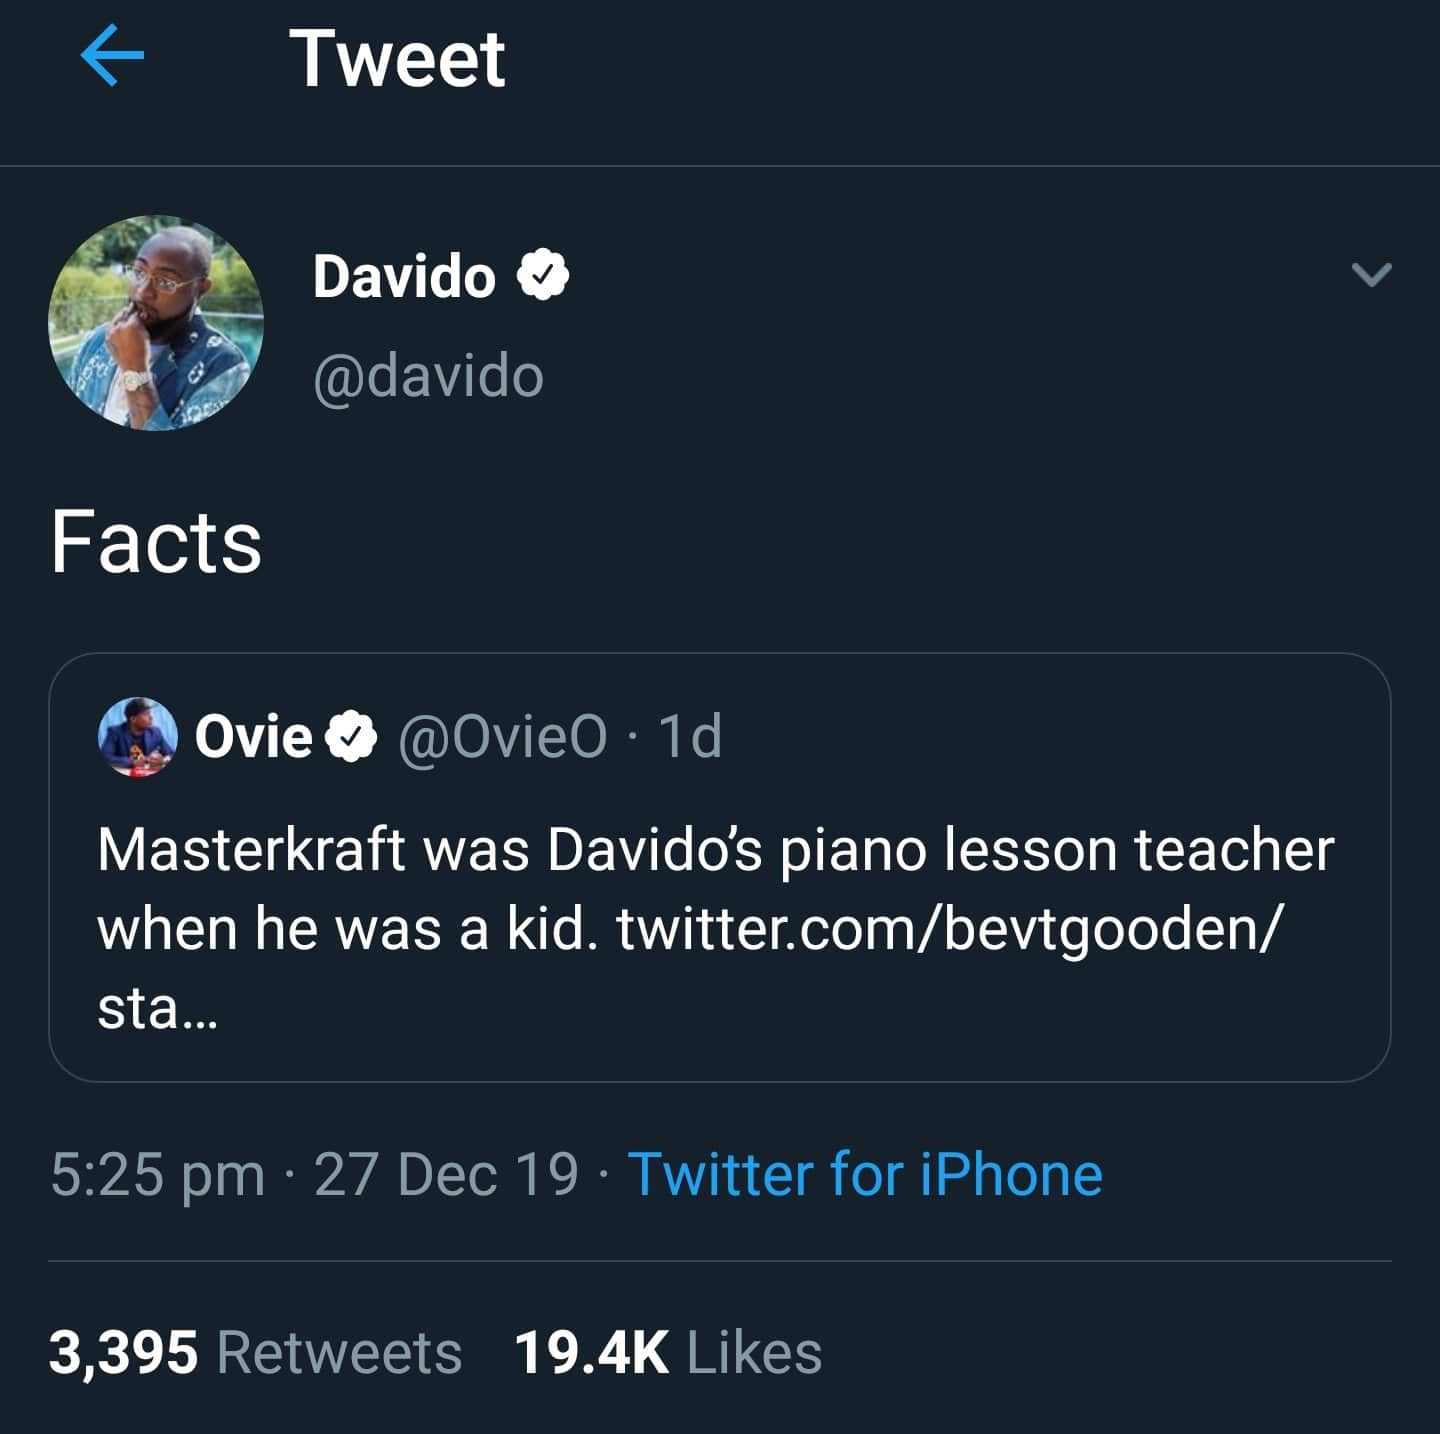 Davido confirms that Masterkraft was his piano teacher when he was a kid